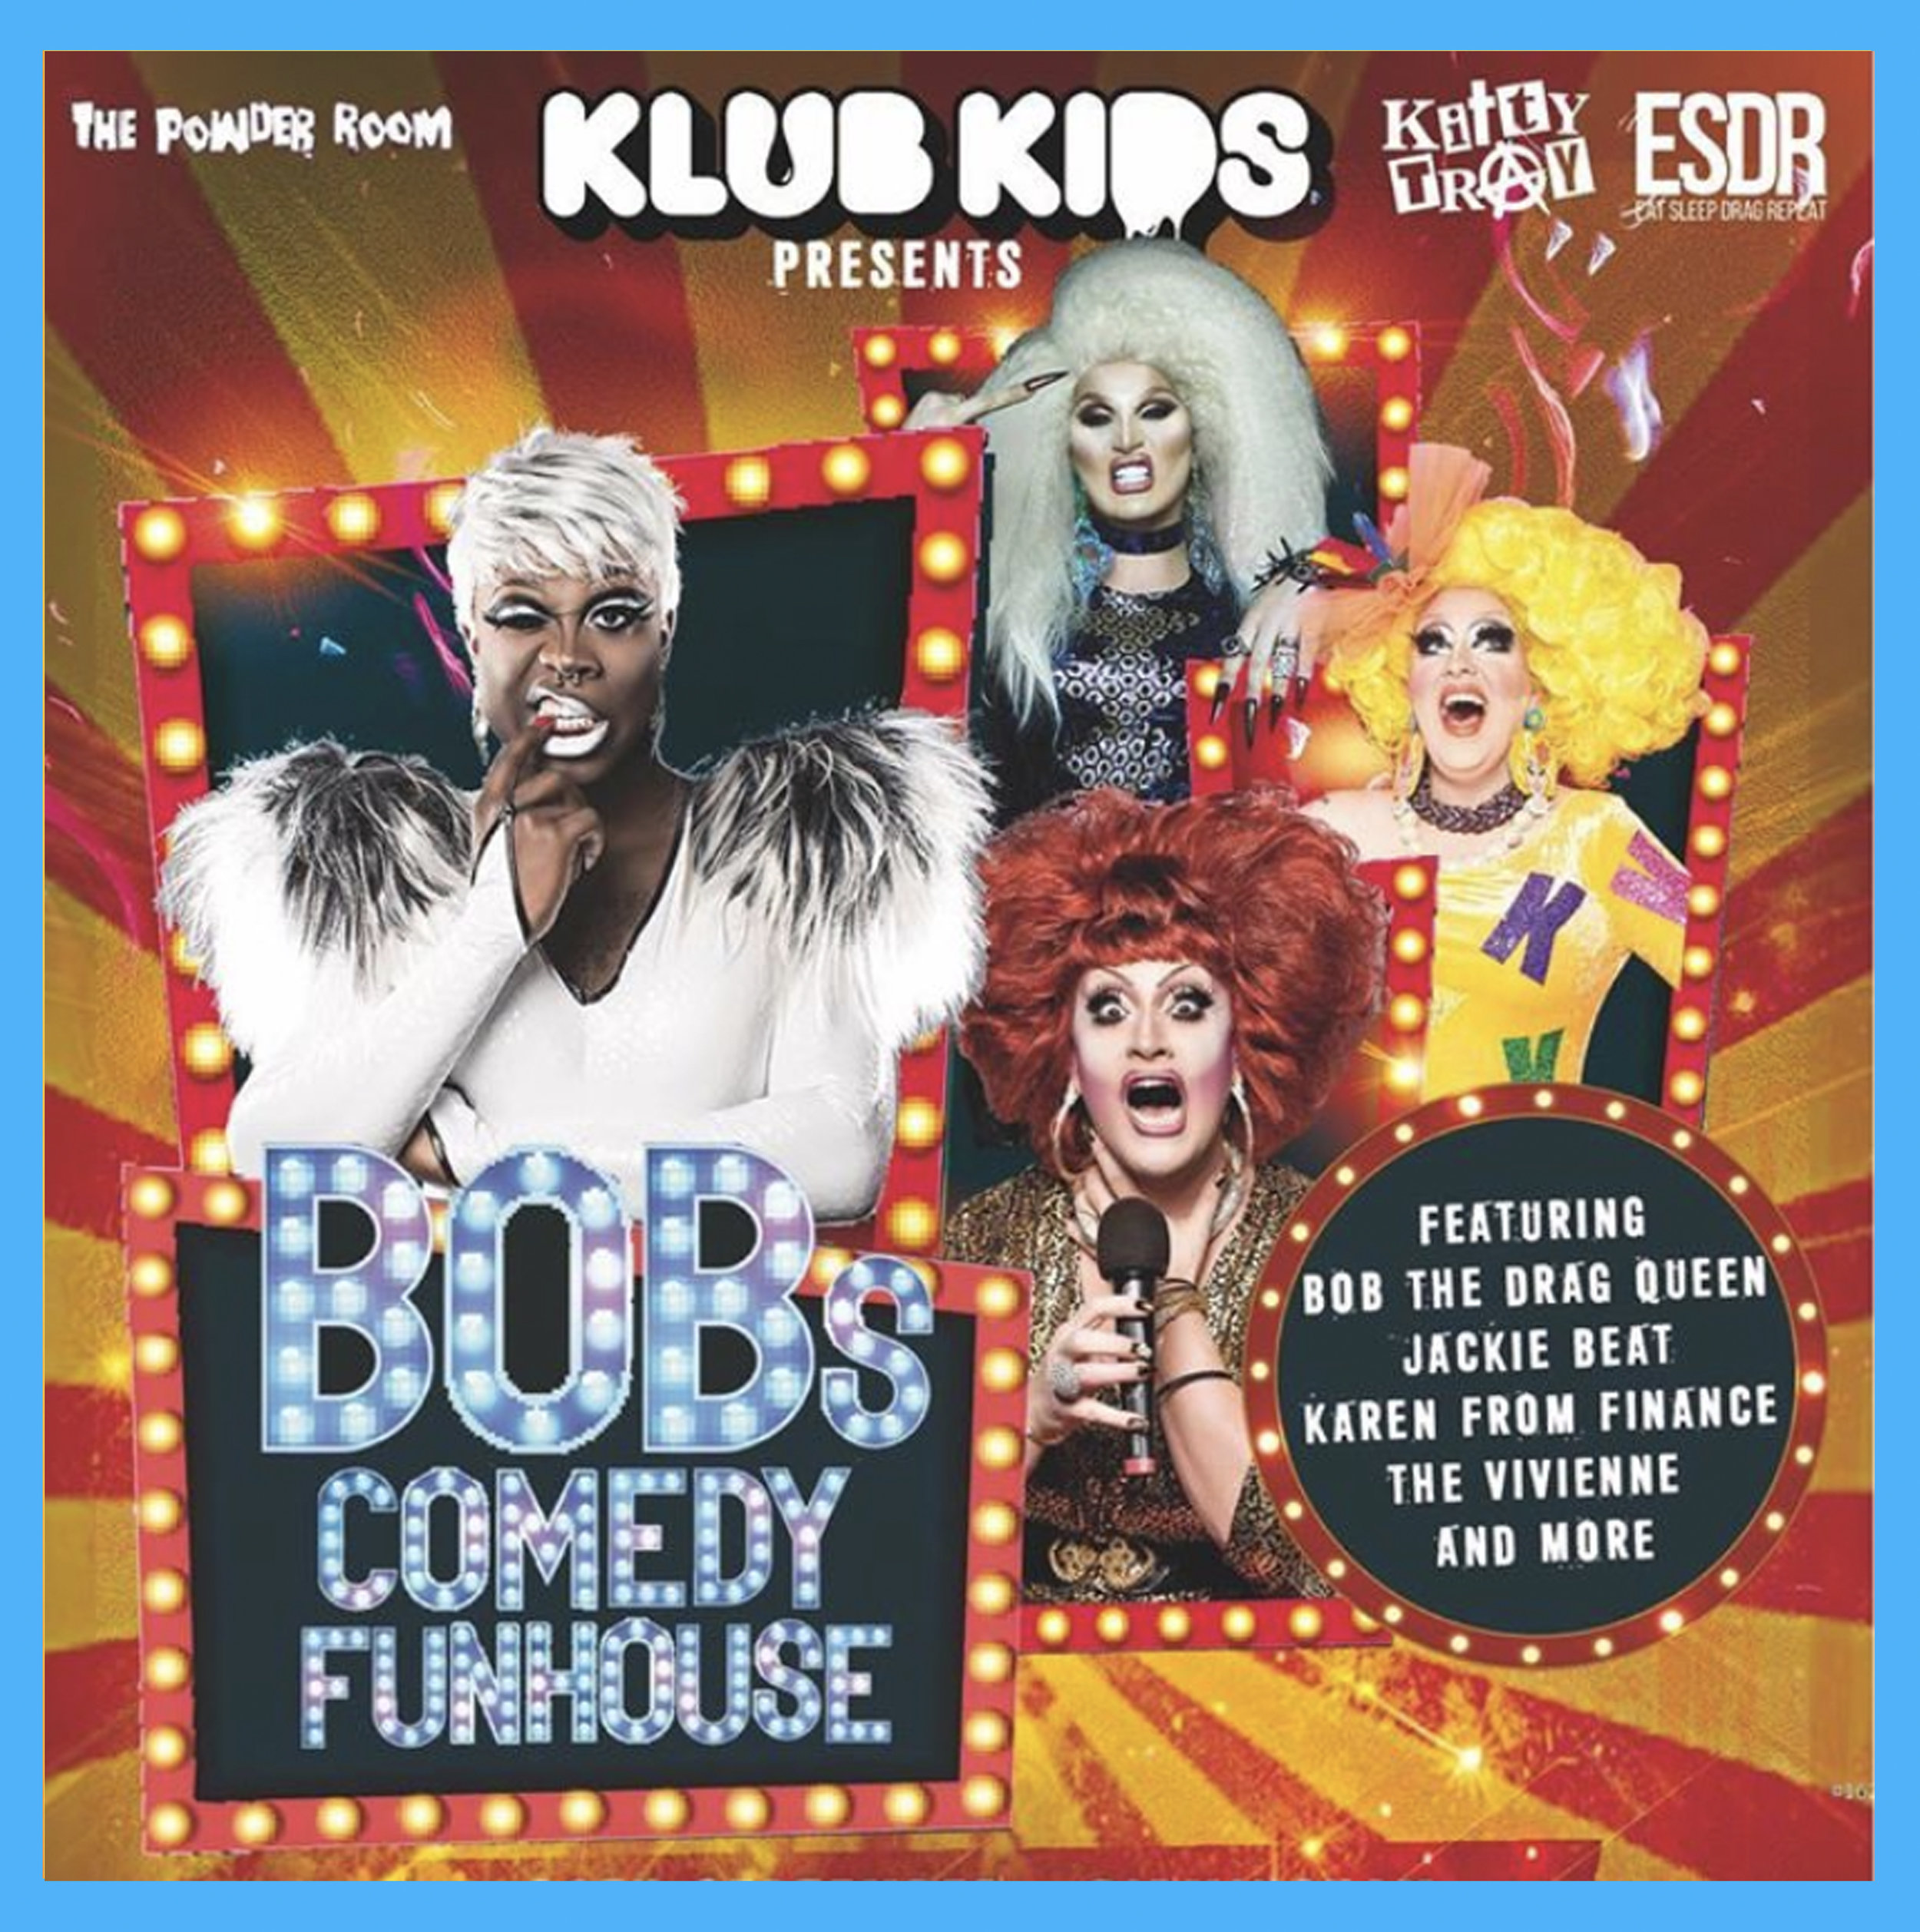 Birmingham, UK - September 30th, 2019, 7:30 PMGlee Club BirminghamA comedy camp special show hosted and performances from Bob The Drag Queen, plus special performances from comedy legend Jackie Beat, Karen from Finance and Liverpool drag legend The Vivienne.Expect a show full of side splitting humour and some funhouse klub kids drama.